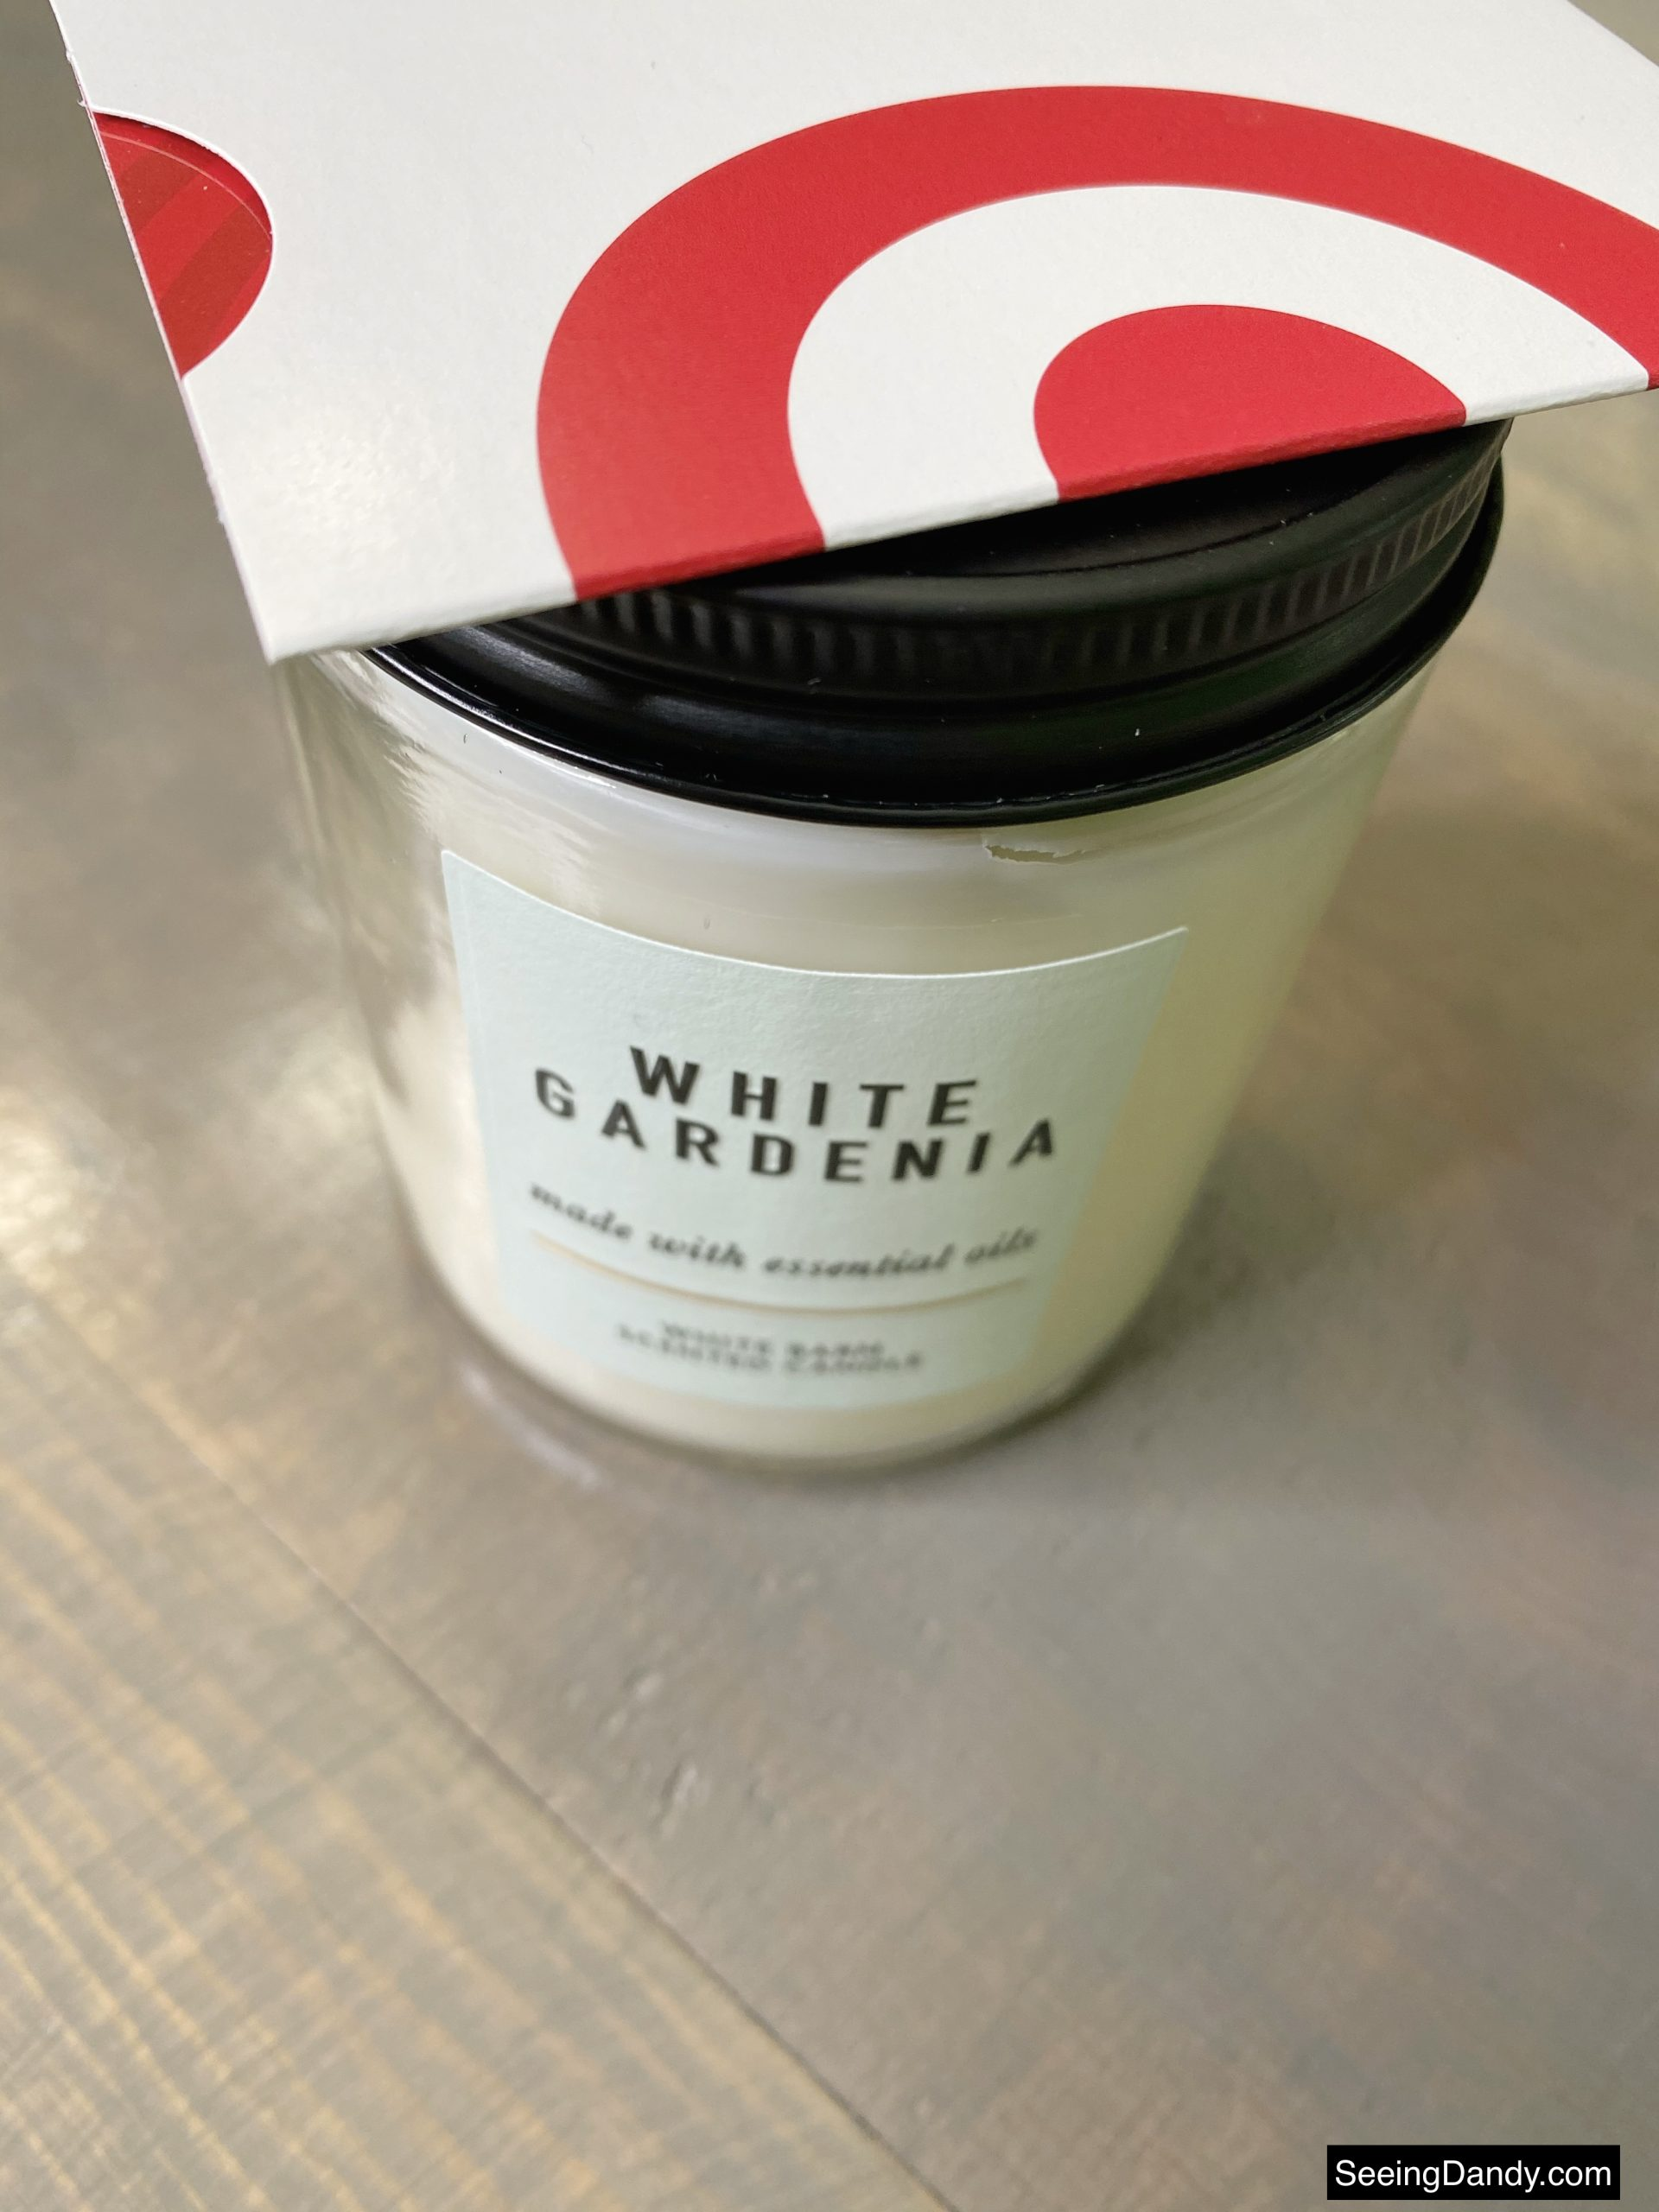 white gardenia candle, bath and body works candle, white barn candle, target gift card, free printable card, white barn scented candle, essential oil candle